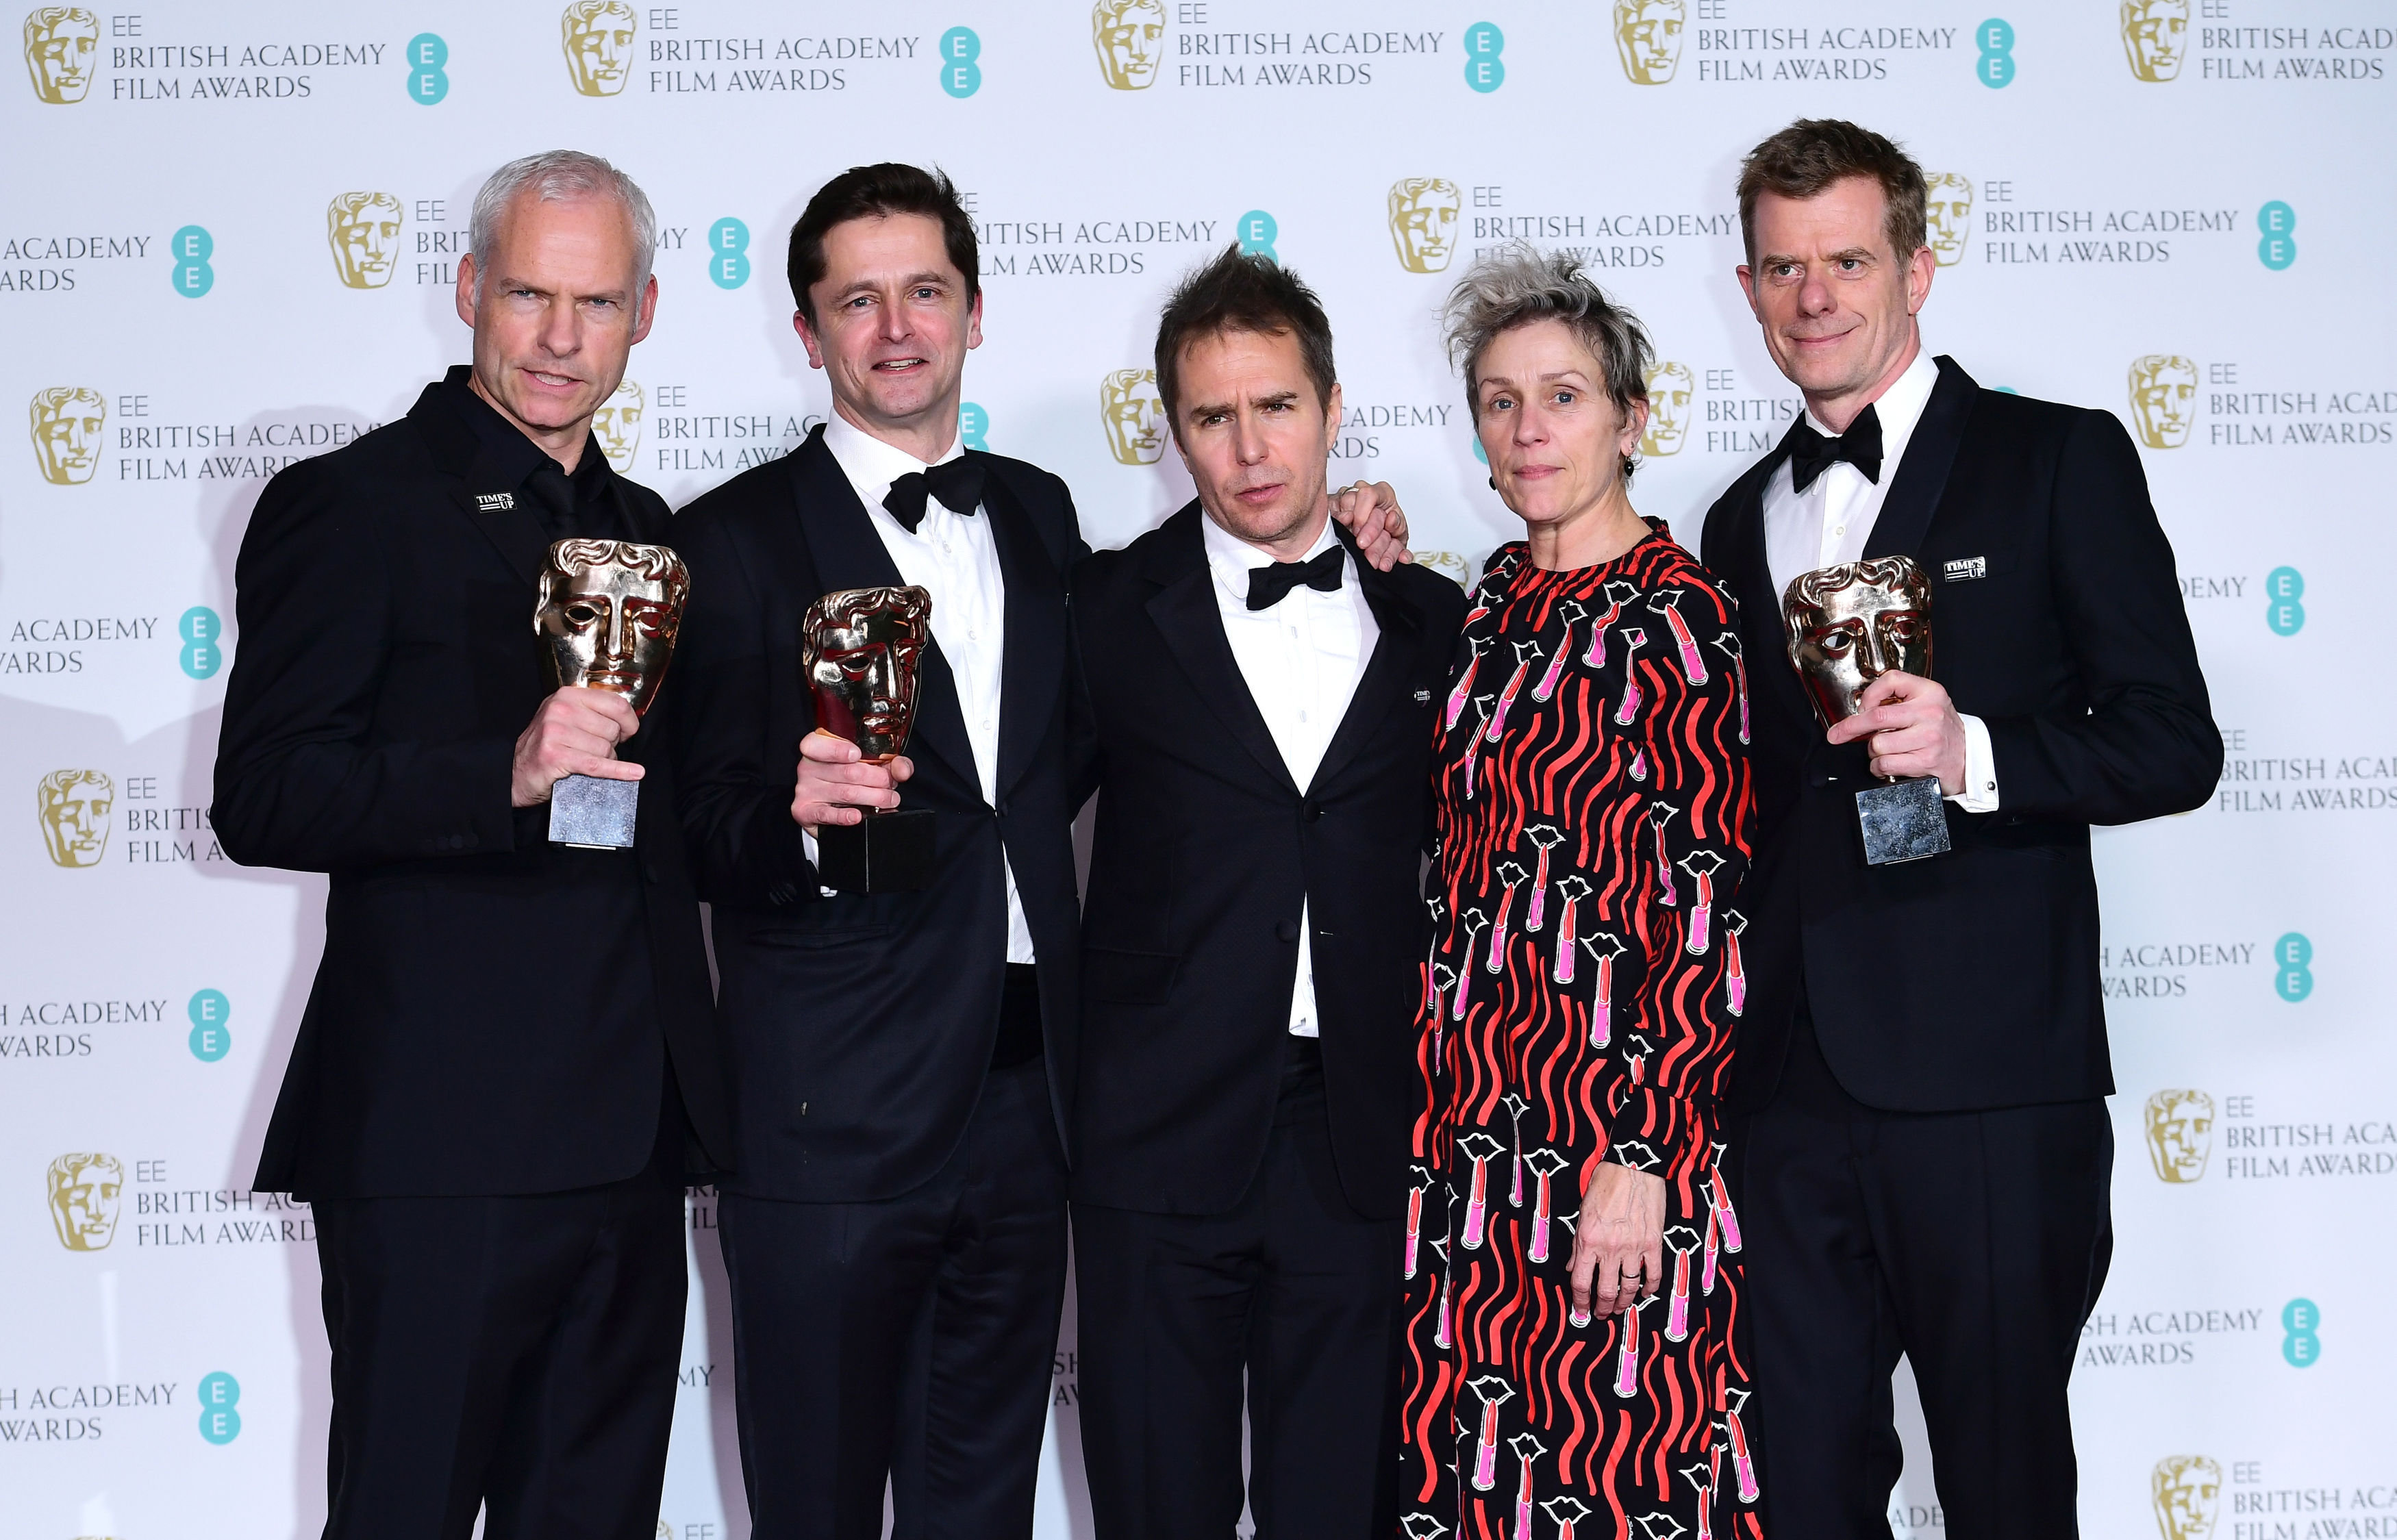 Baftas Winners List 2018: 'Three Billboards' Leads With Five Accolades